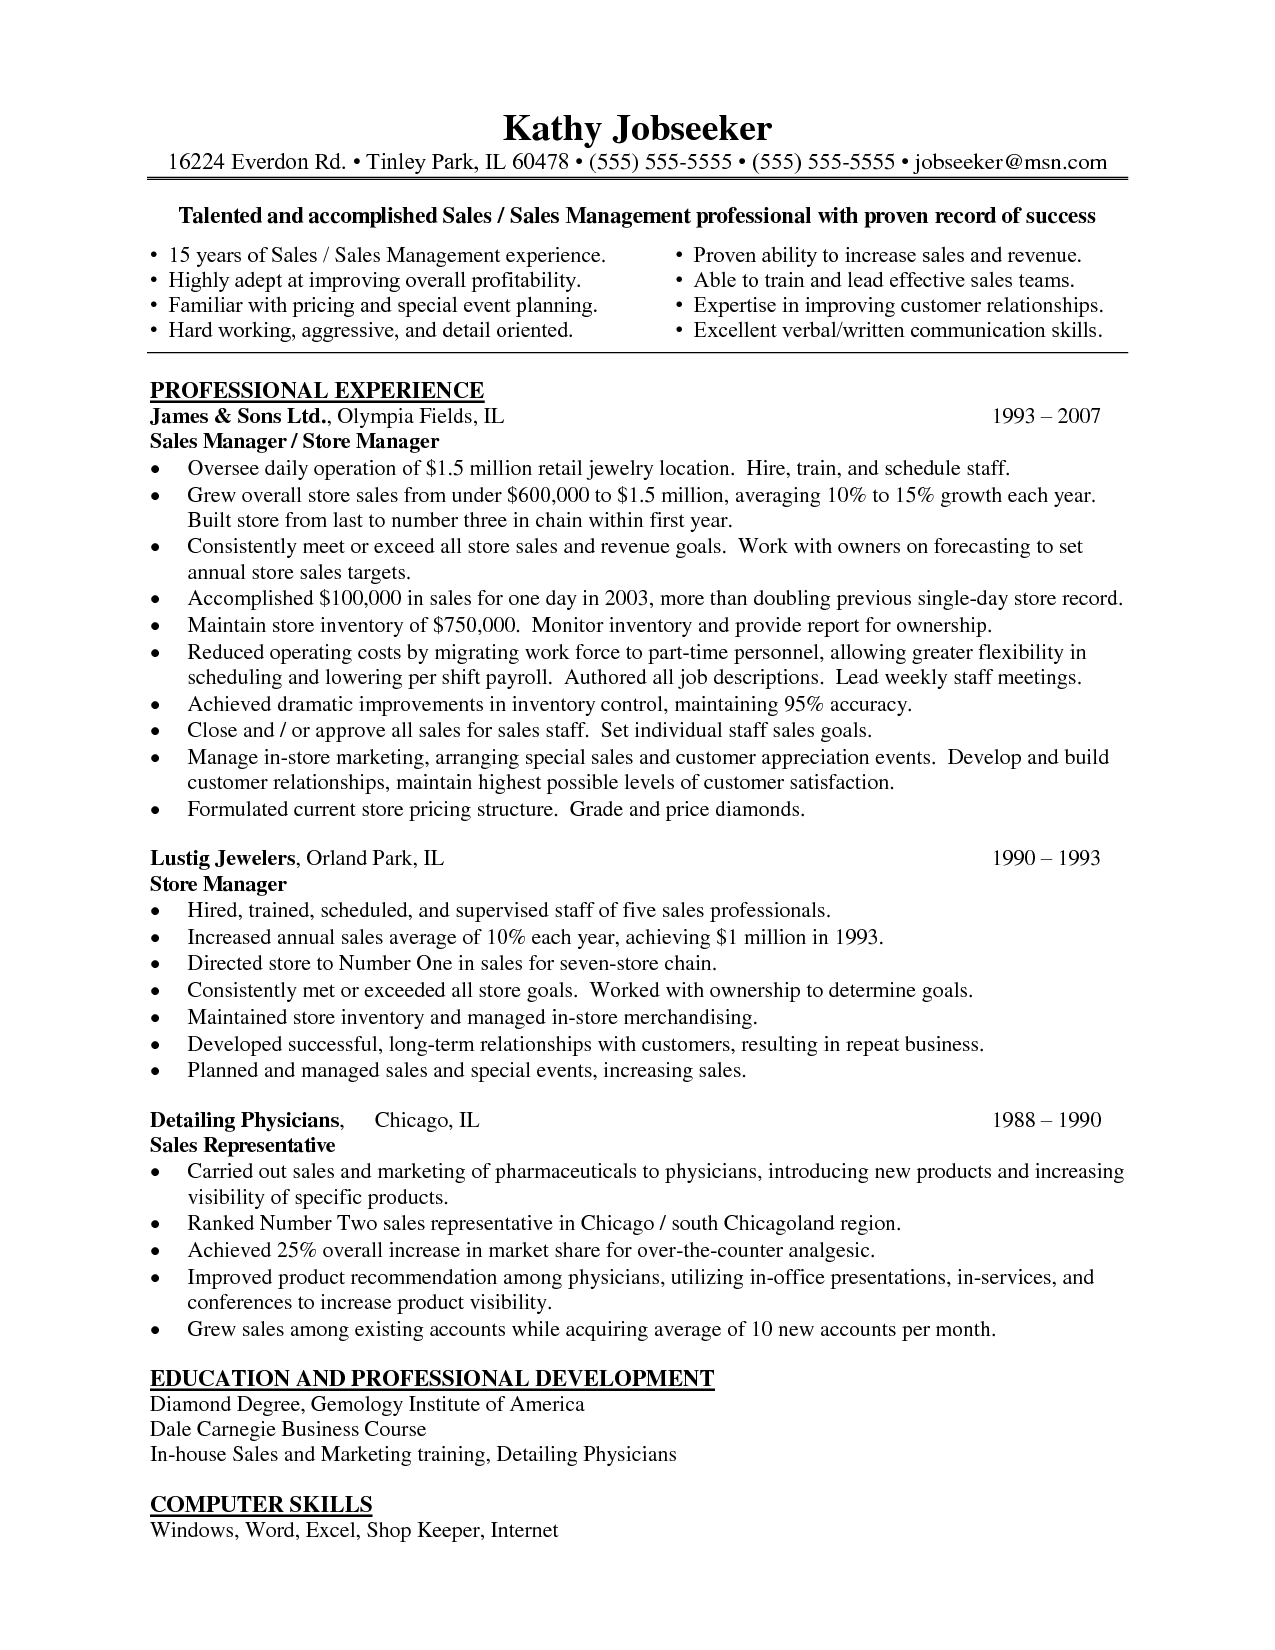 resume it sample 17 best building a career planning your resume images on - It Sample Resumes